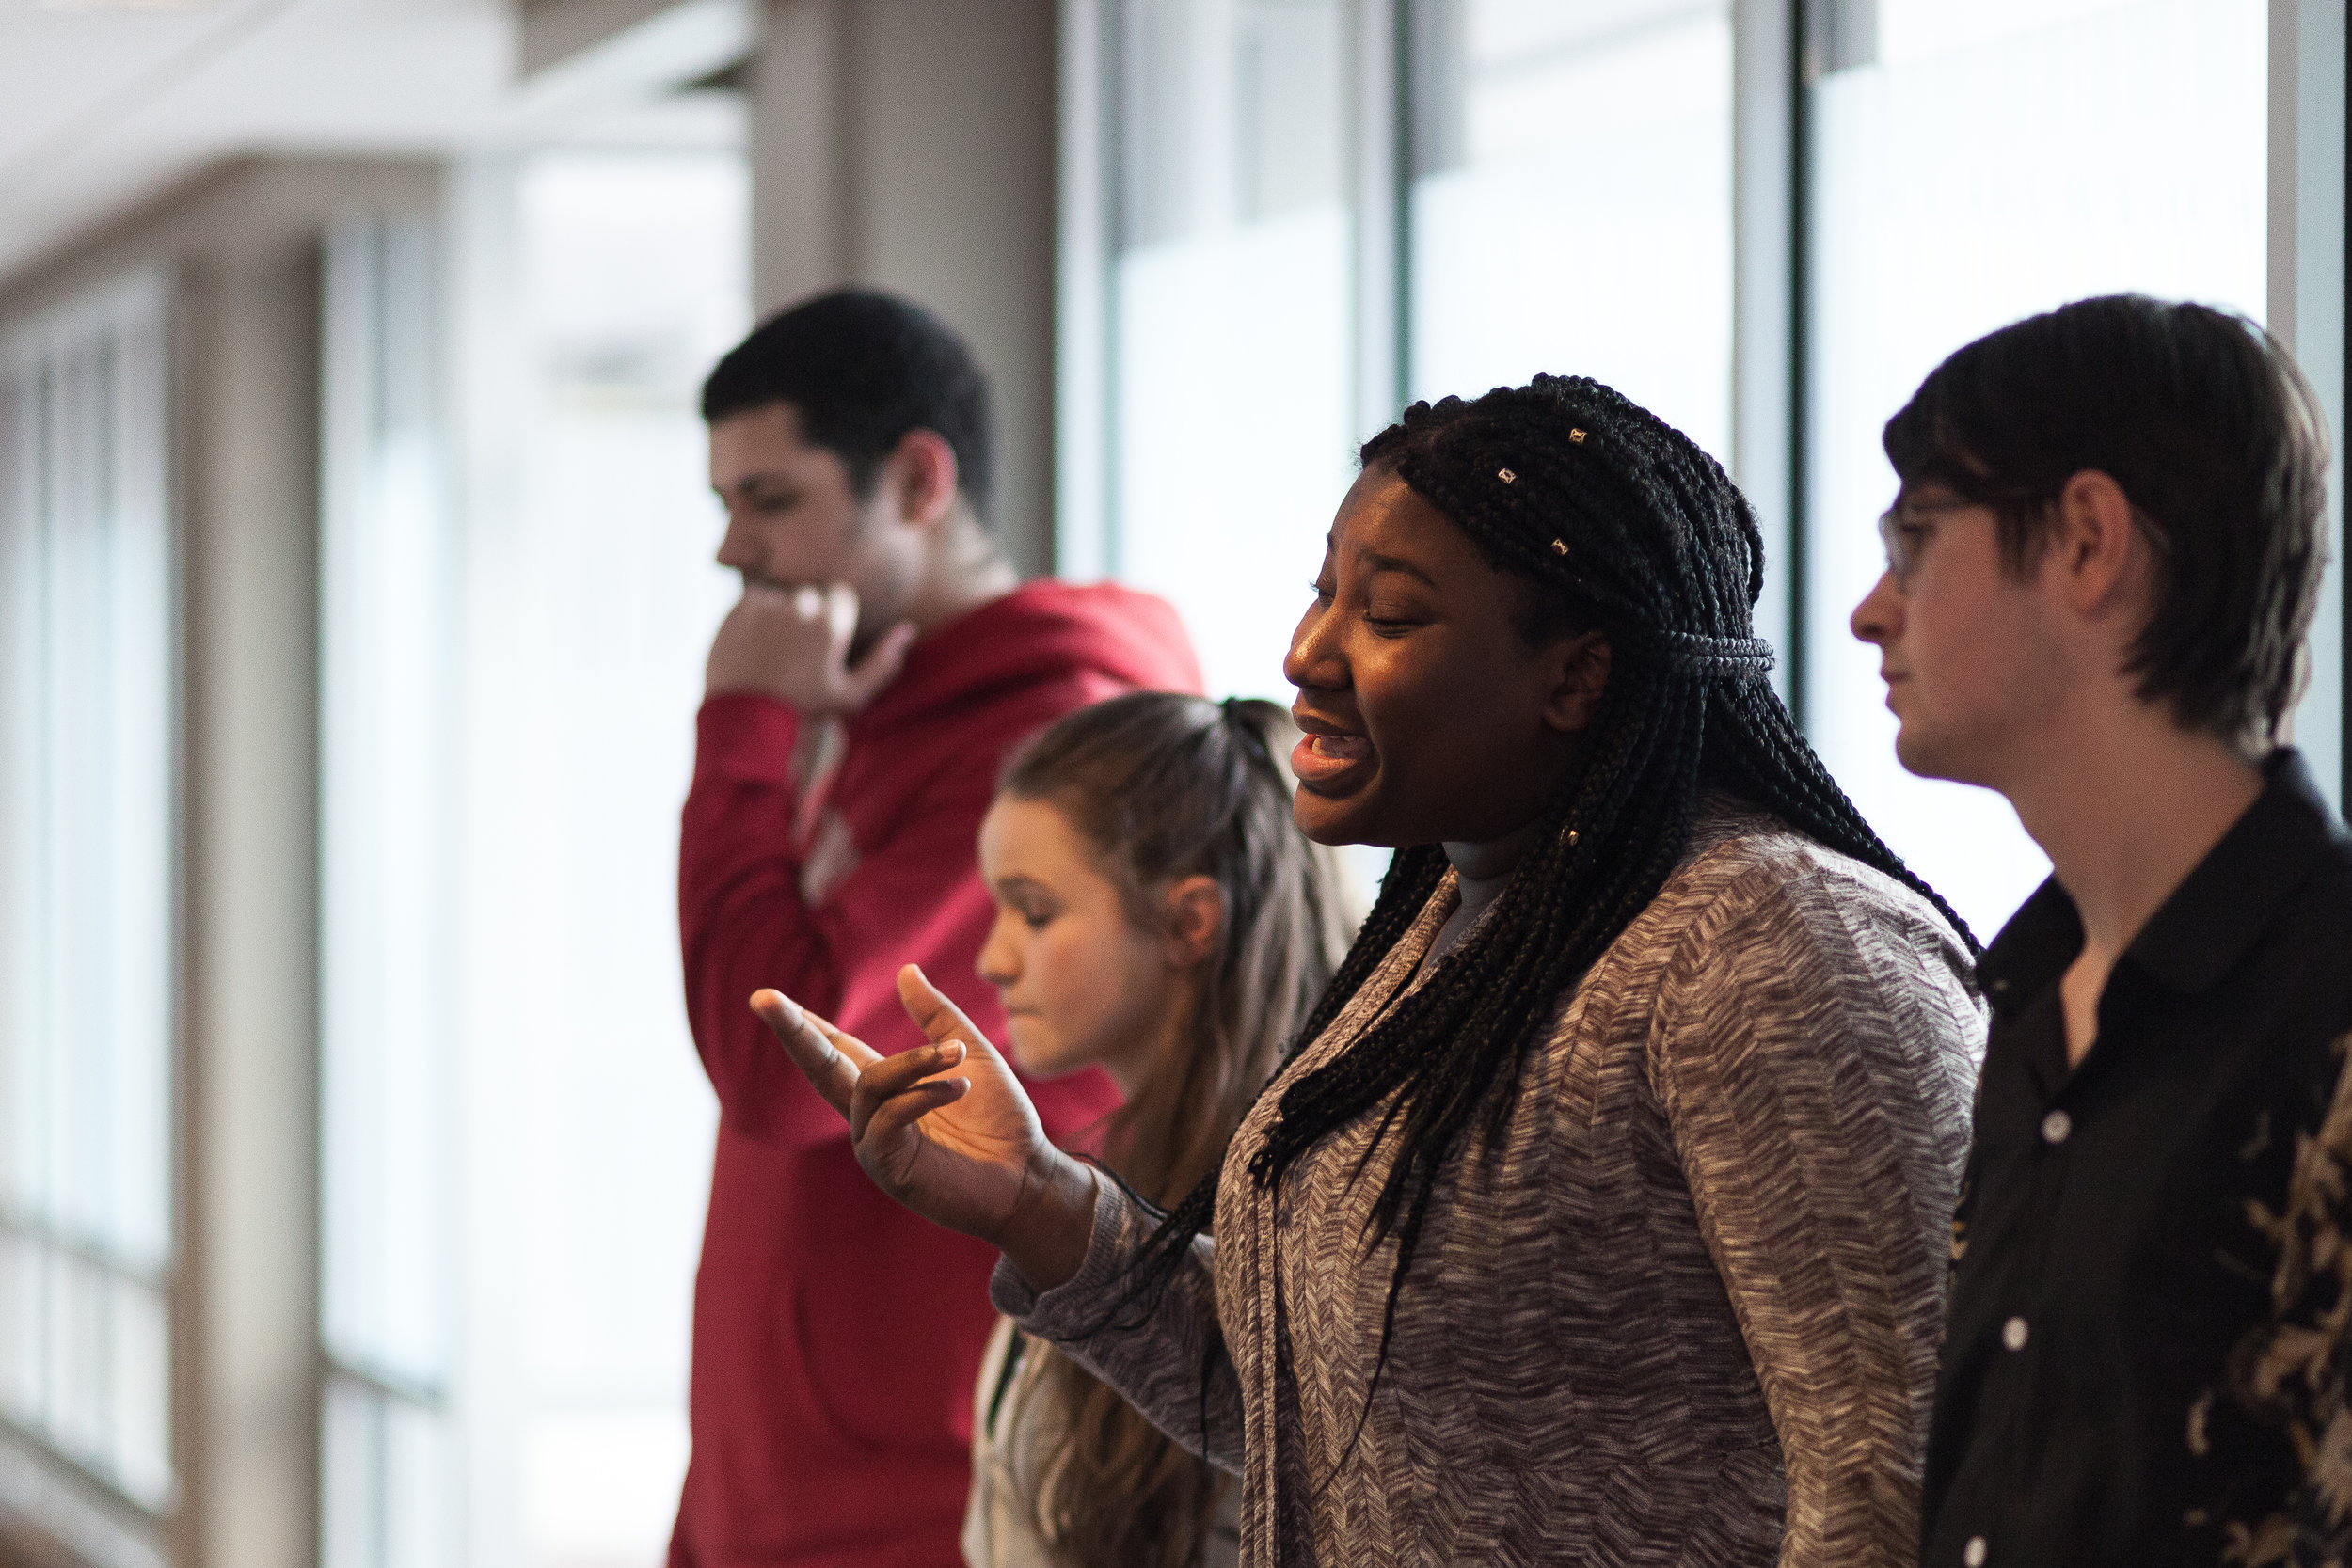 Pierresaint's team Books of Hope rehearses their poem before performing in the preliminary stage of Louder Than A Bomb, a national youth poetry competition April 8 in Boston.